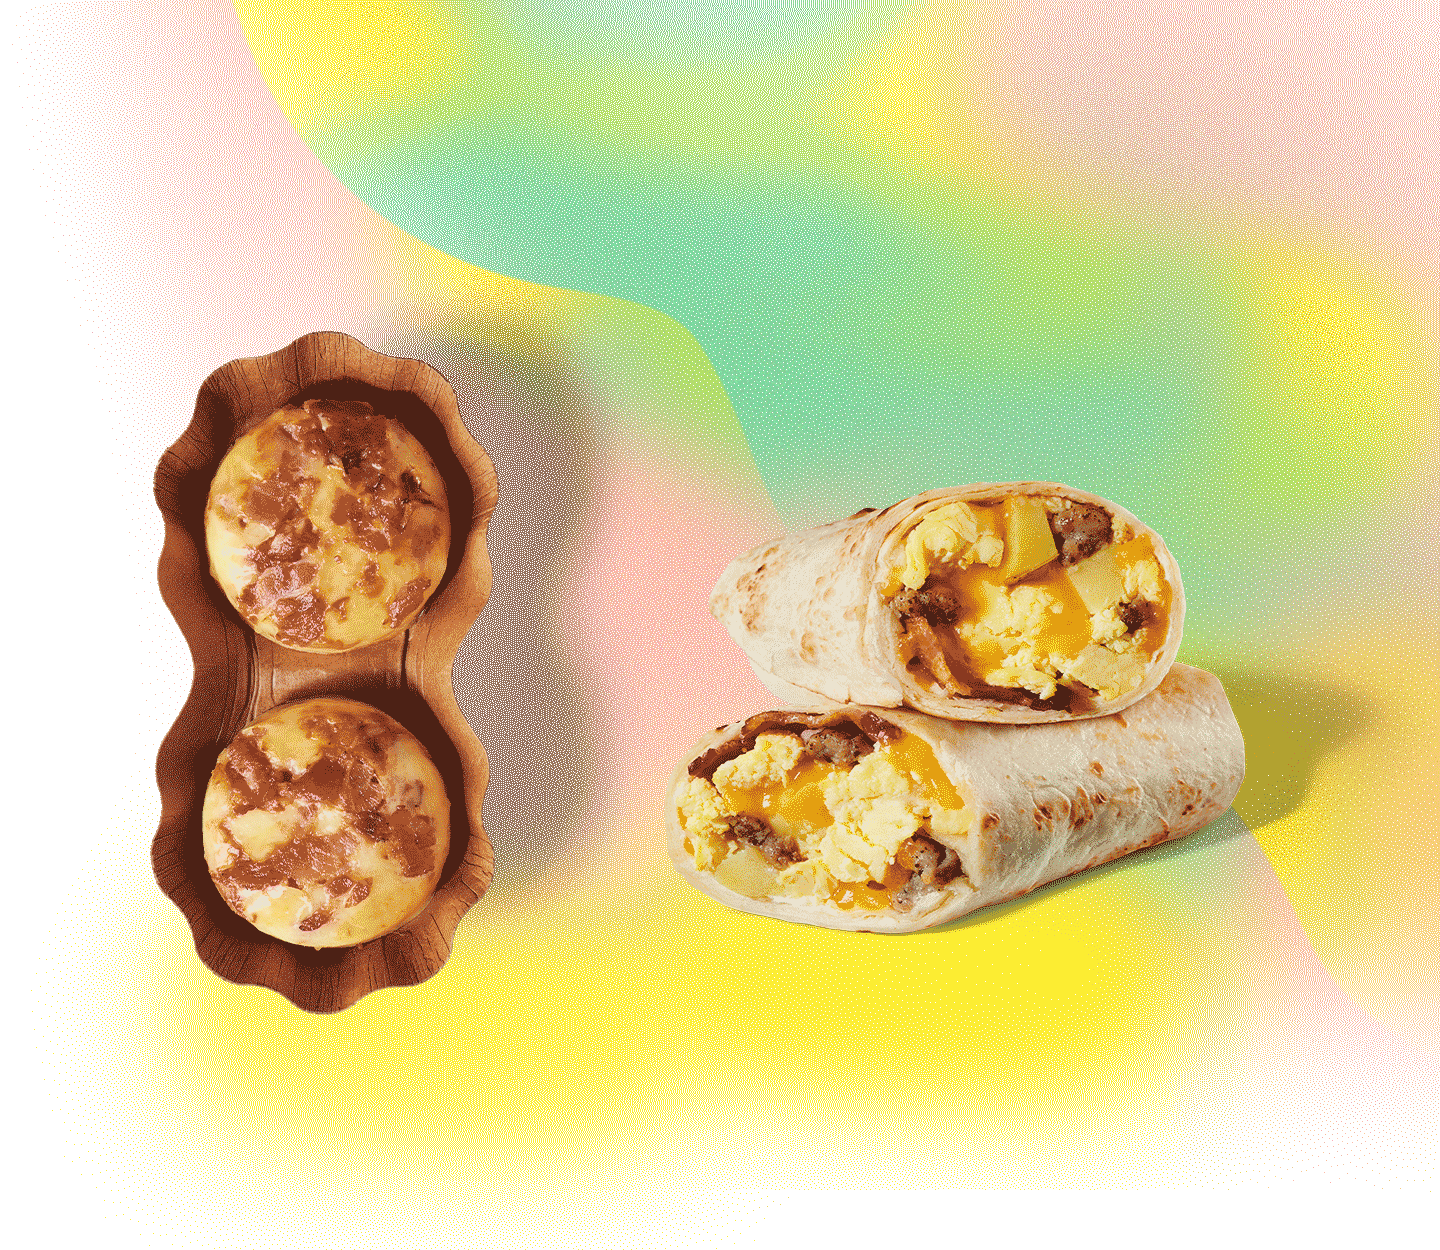 Two round egg bites next to a stacked wrap